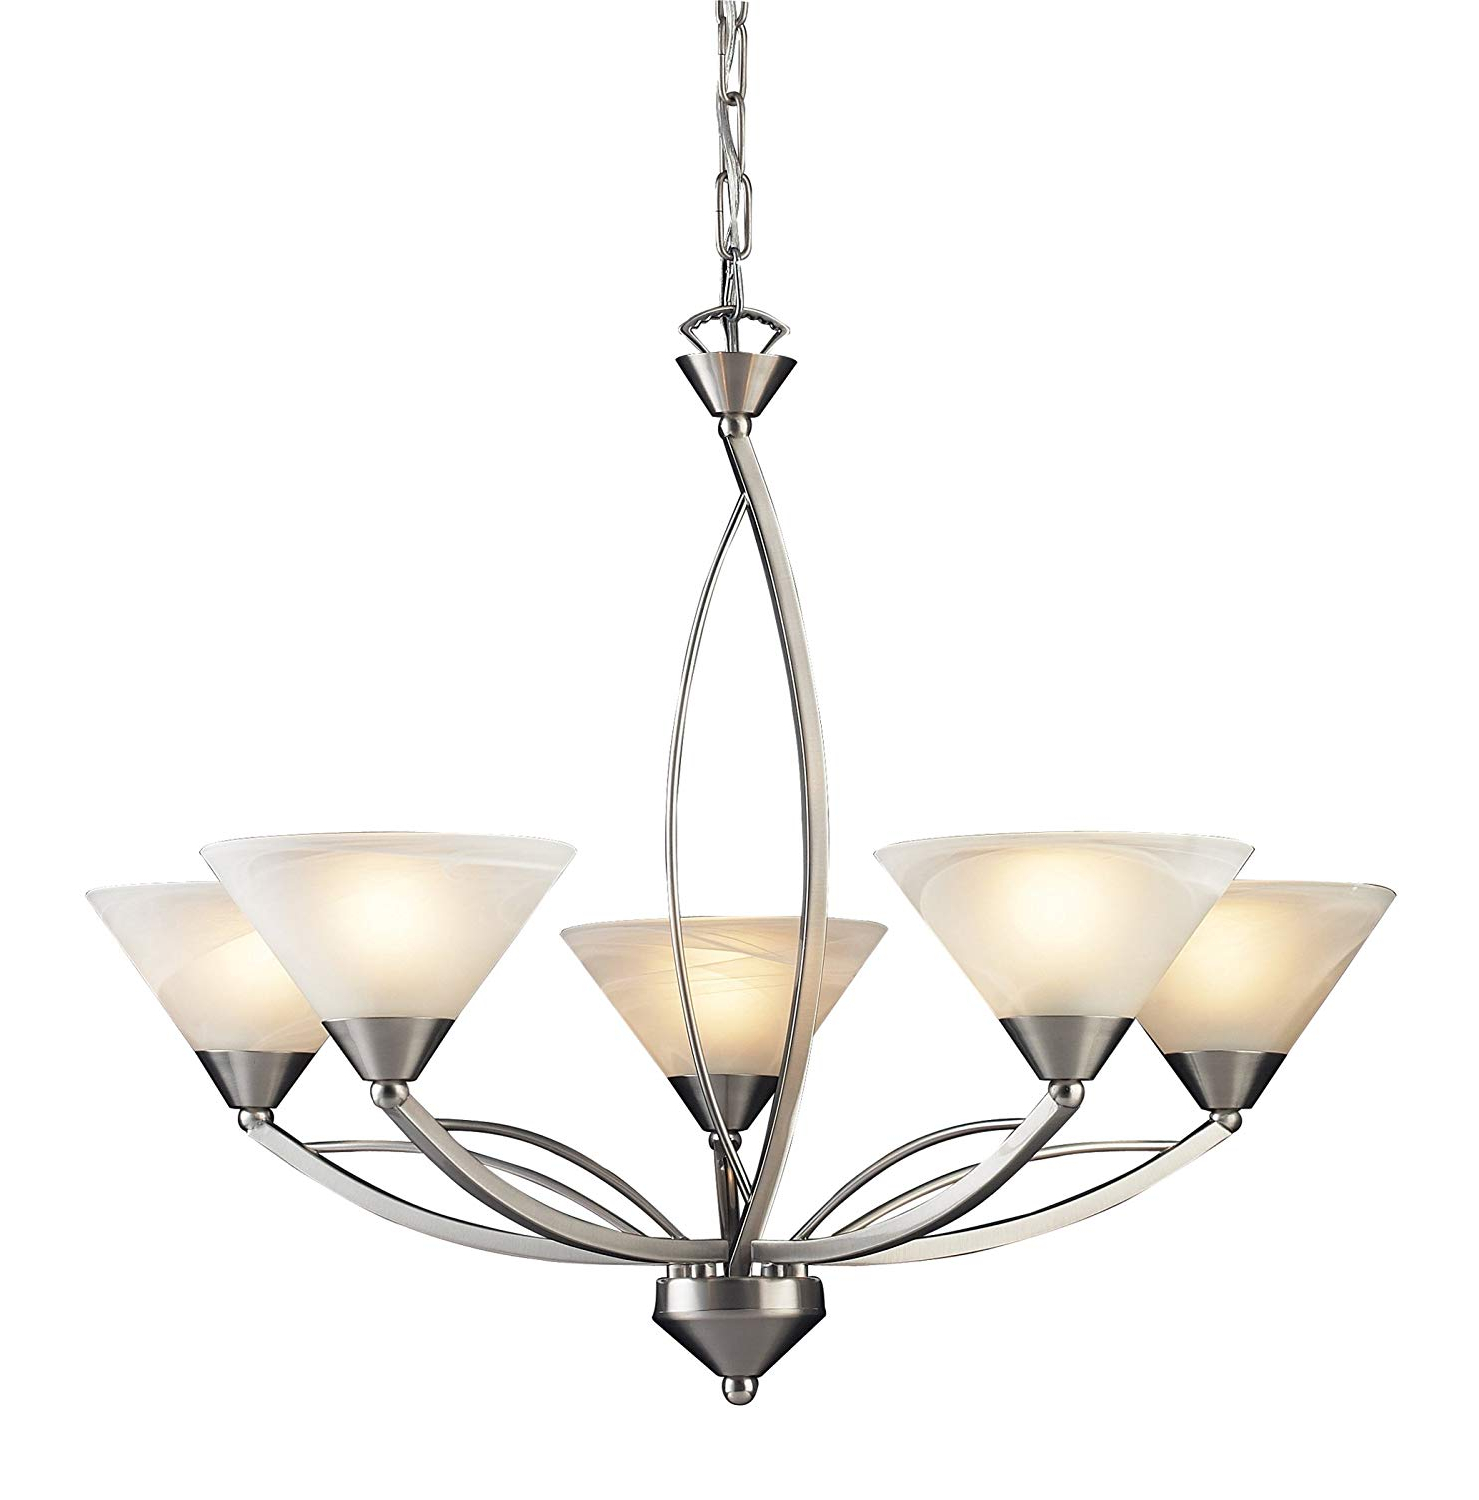 Suki 5 Light Shaded Chandeliers With Most Current Elk 7637/5 5 Light Chandelier In Satin Nickel And Marbleized White Glass (View 20 of 25)